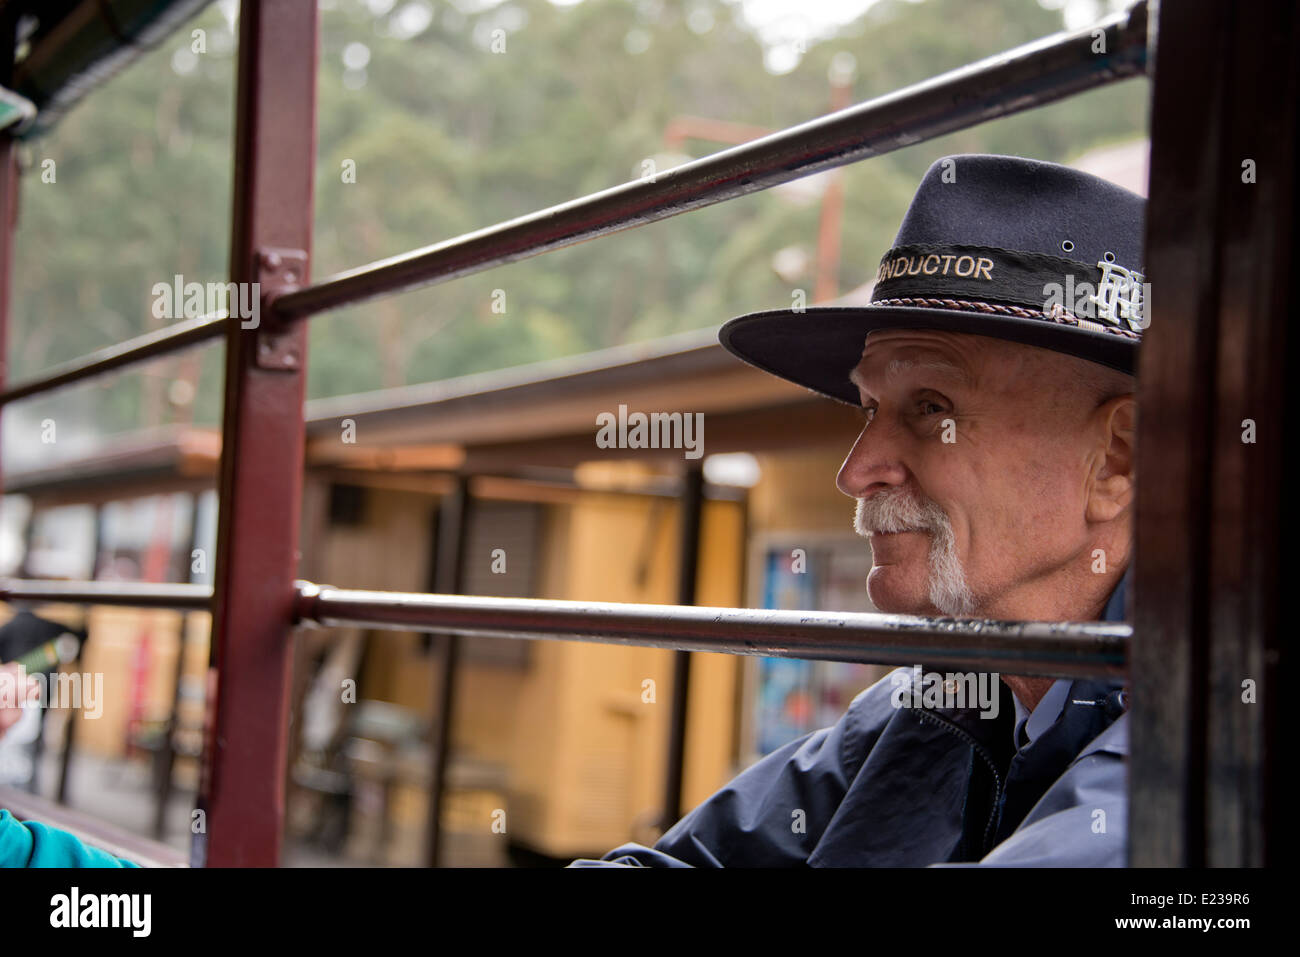 Australia, Victoria, Melbourne, Dandenong Ranges. Puffing Billy, historic vintage steam train, circa early 1900's. - Stock Image